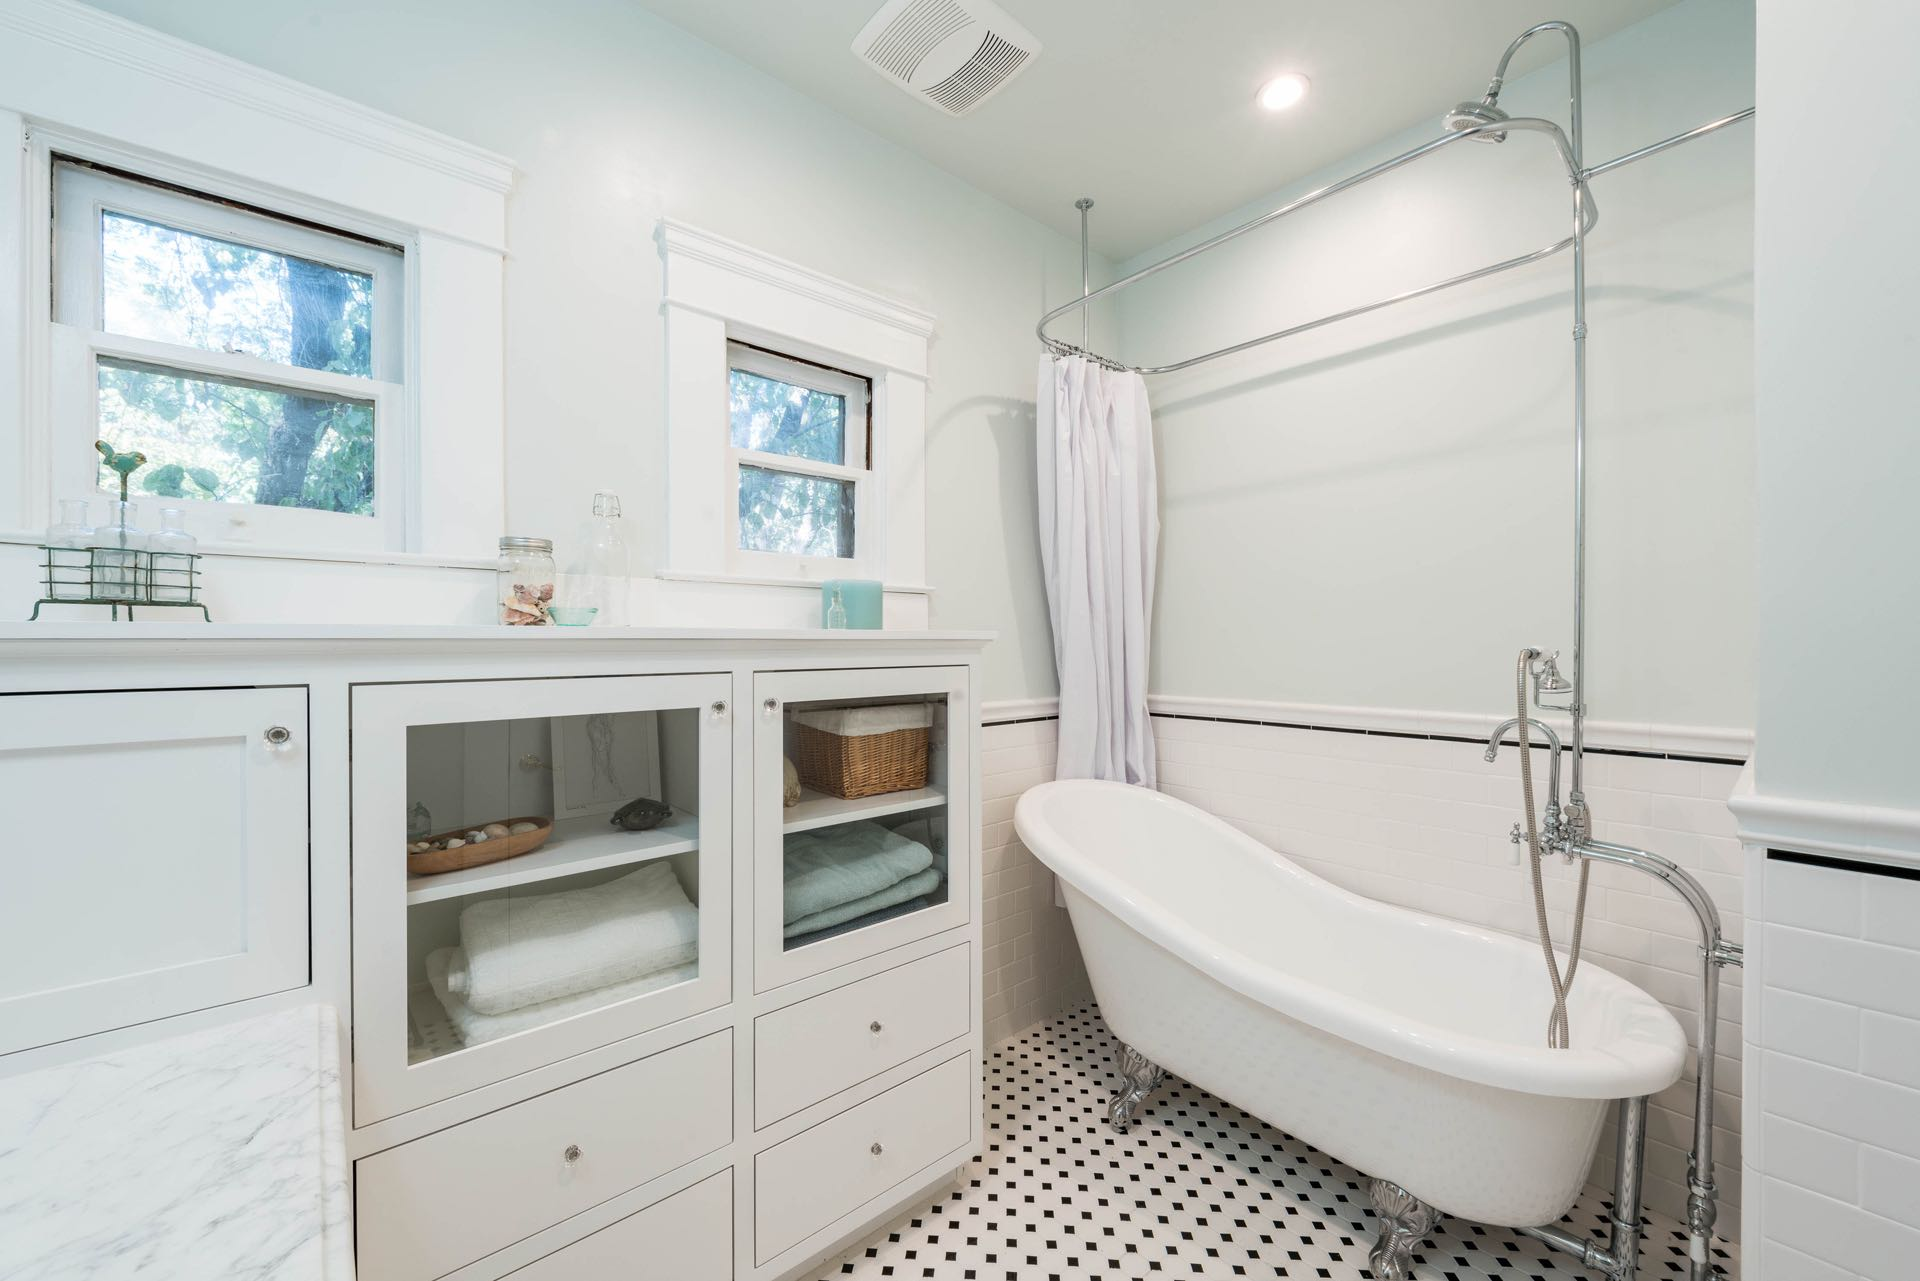 Kitchen And Bathroom Remodeling San Jose Ca